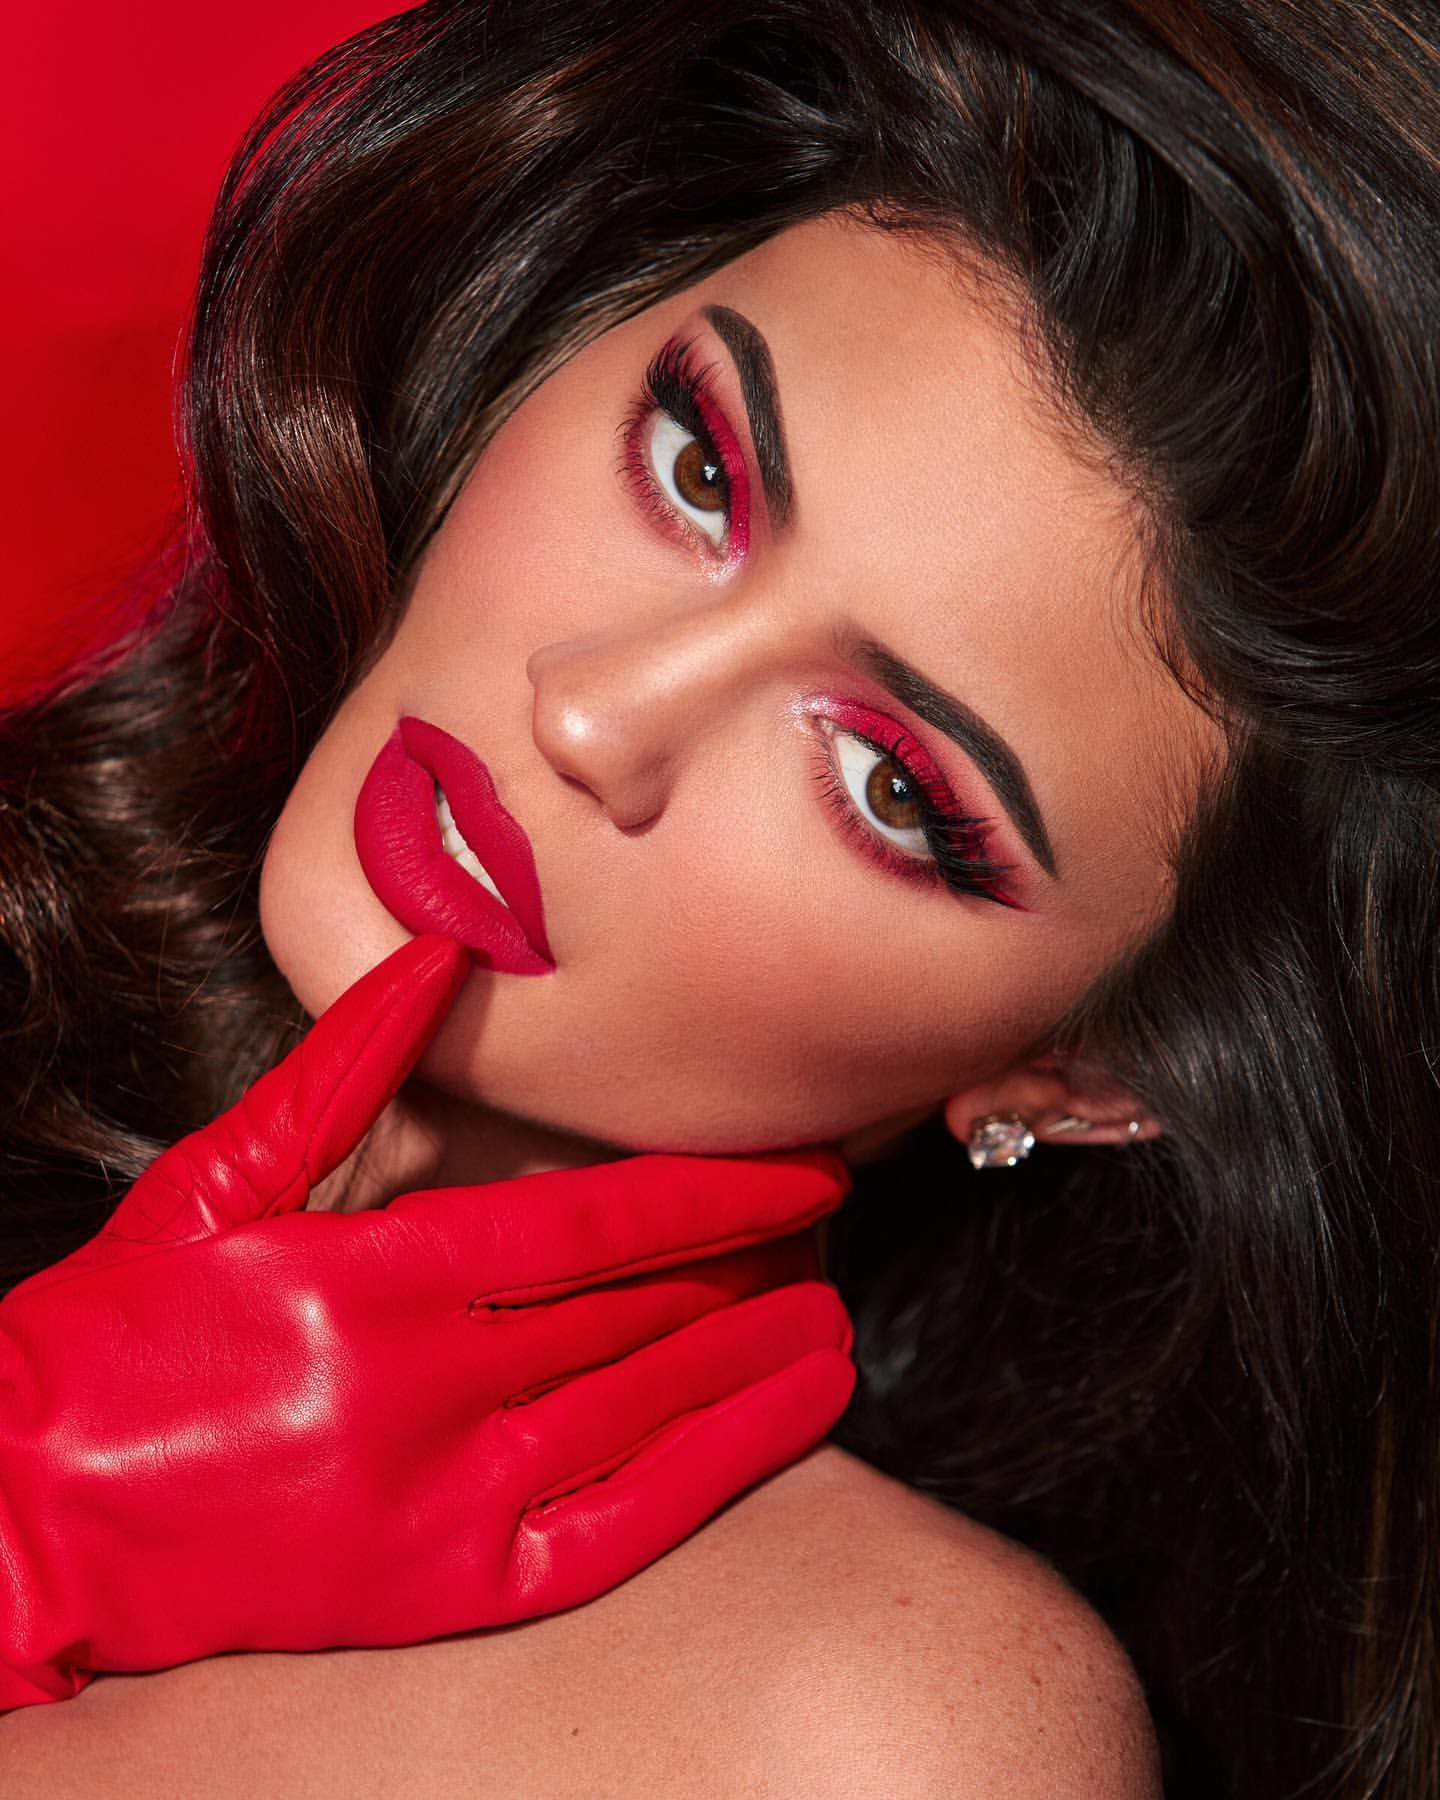 Kylie Jenner Red Hot Photoshoot